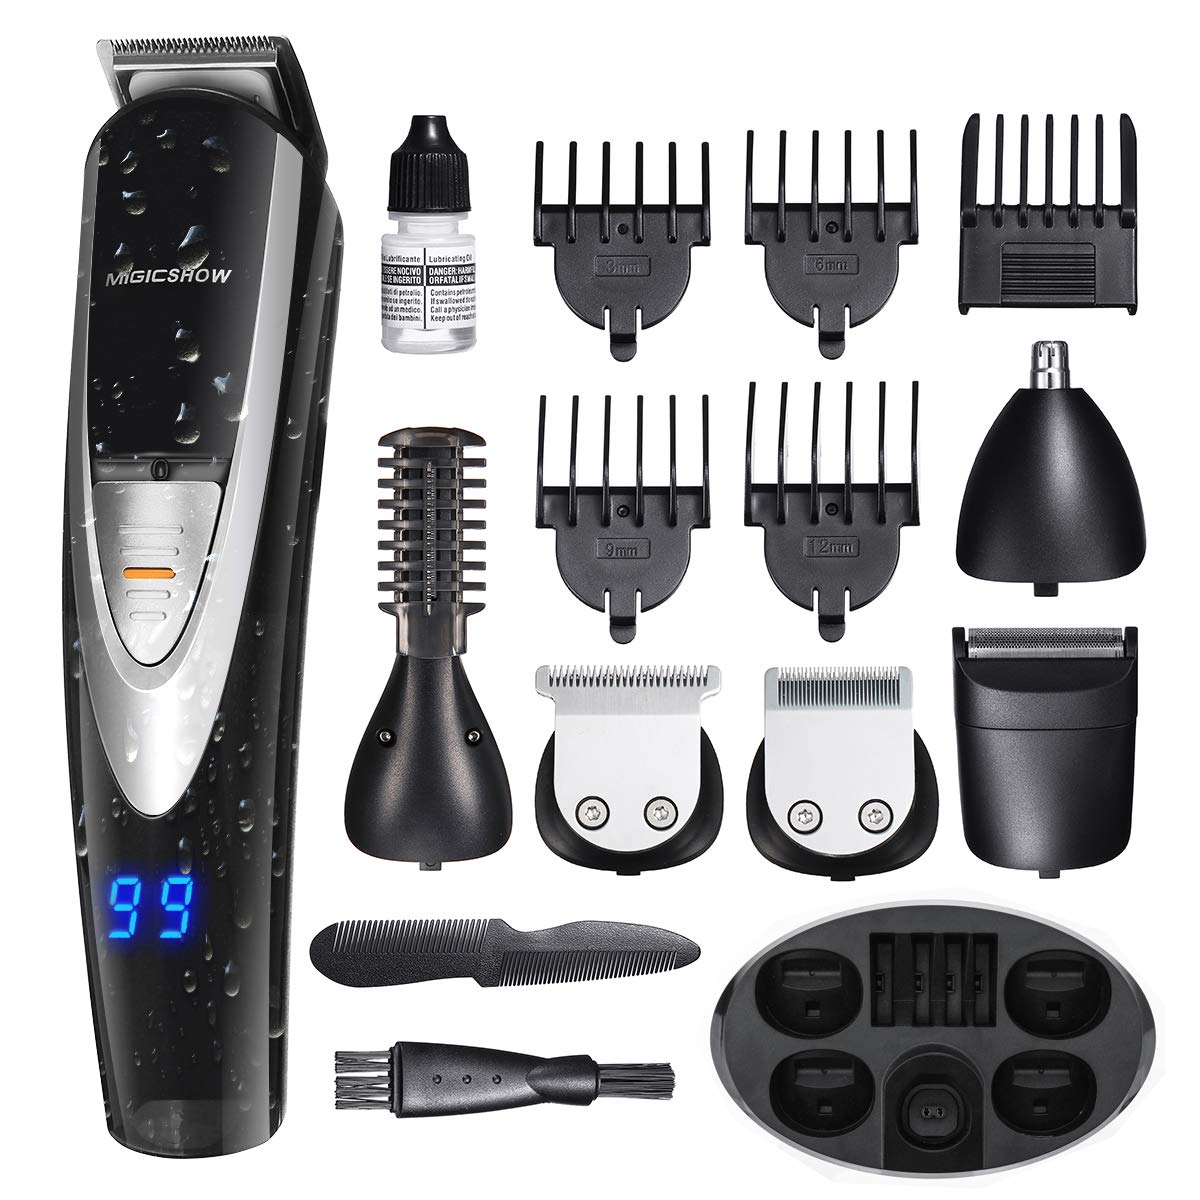 MIGICSHOW Electric Beard Trimmer for men -12 in 1 Multi-functional Grooming Kit for Full size trimmer, Shaver and Body trimmer, Waterproof Support for Shower with LED Display Application of 100-240V